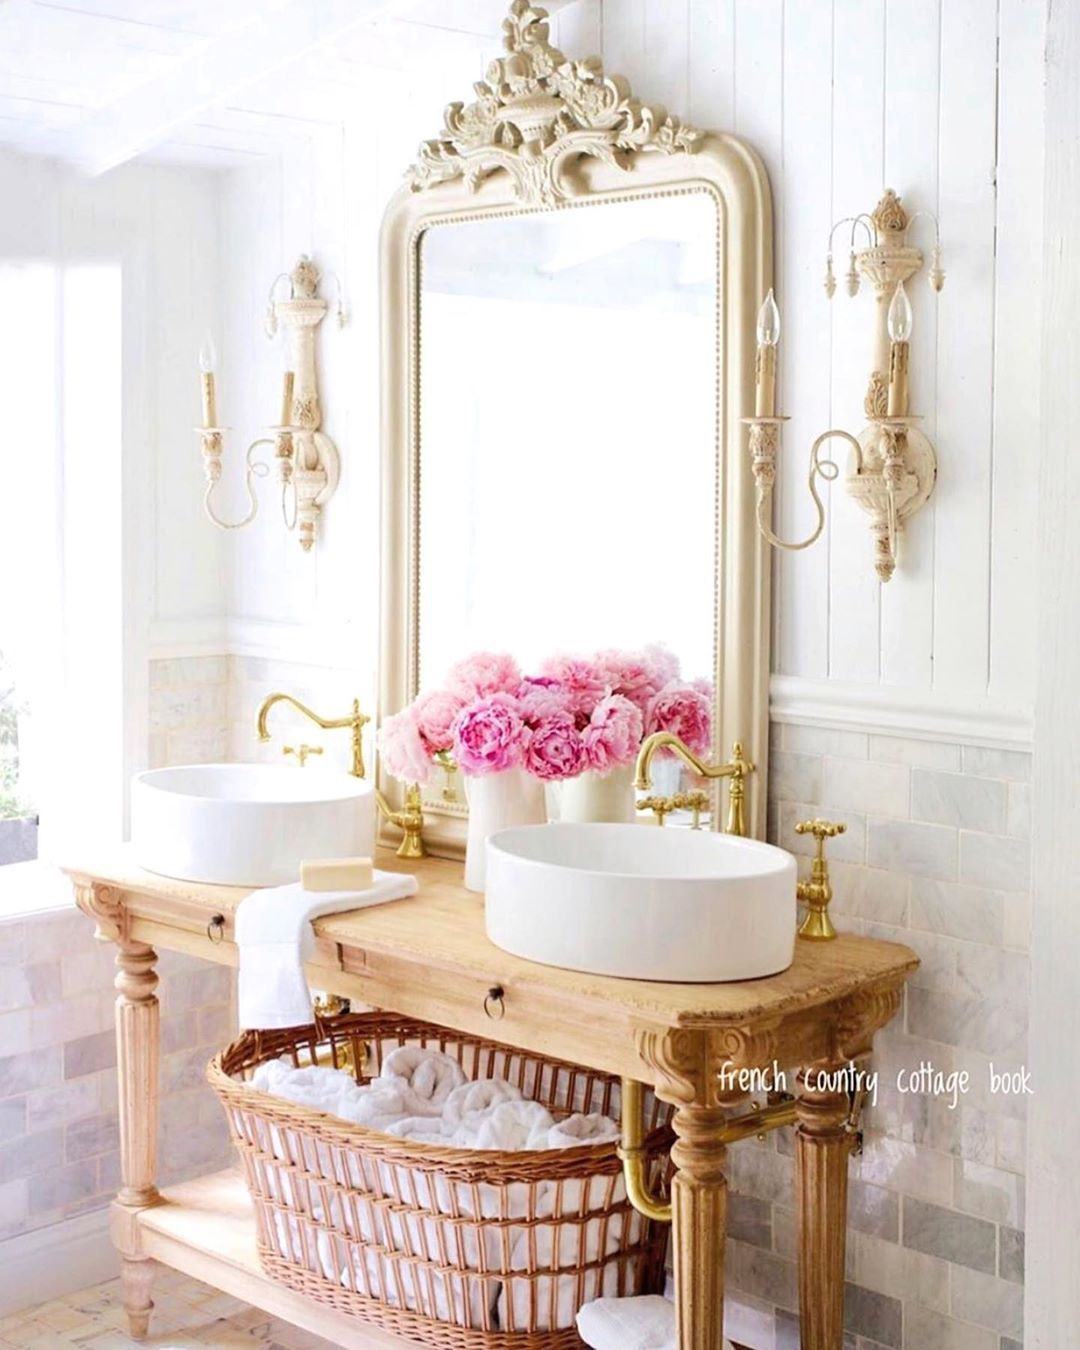 23 French Country Bathroom Decor Ideas For Your Home